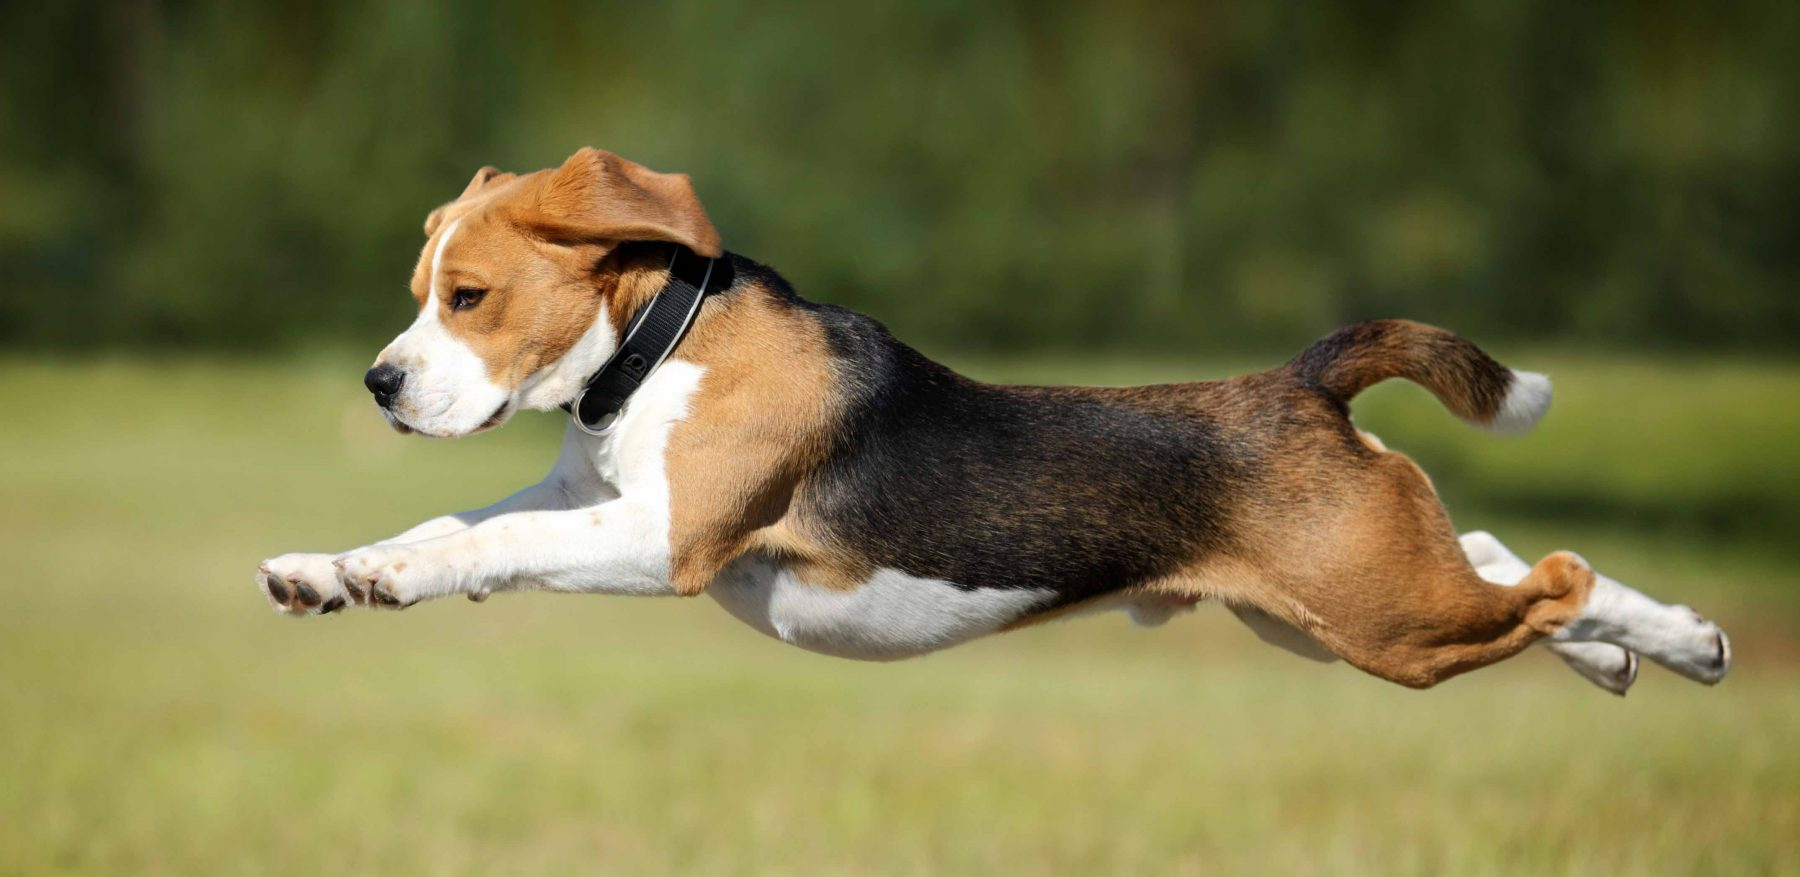 a healthy leaping dog